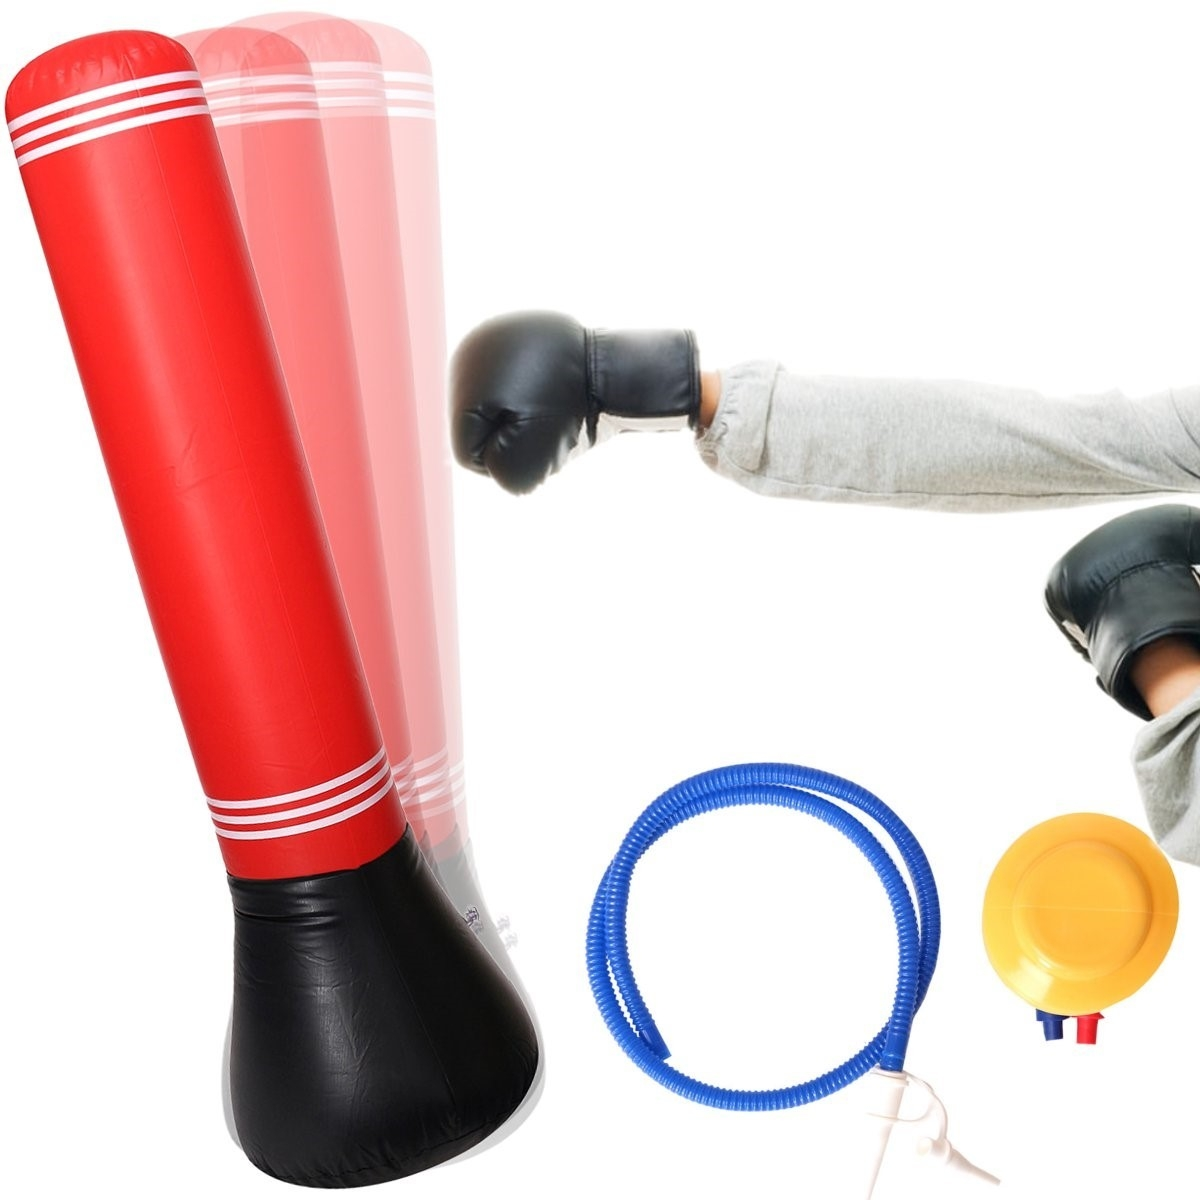 e132a9749cb73 Inflatable Punching Bag Stand Power Tower For Speed Boxing Training ...